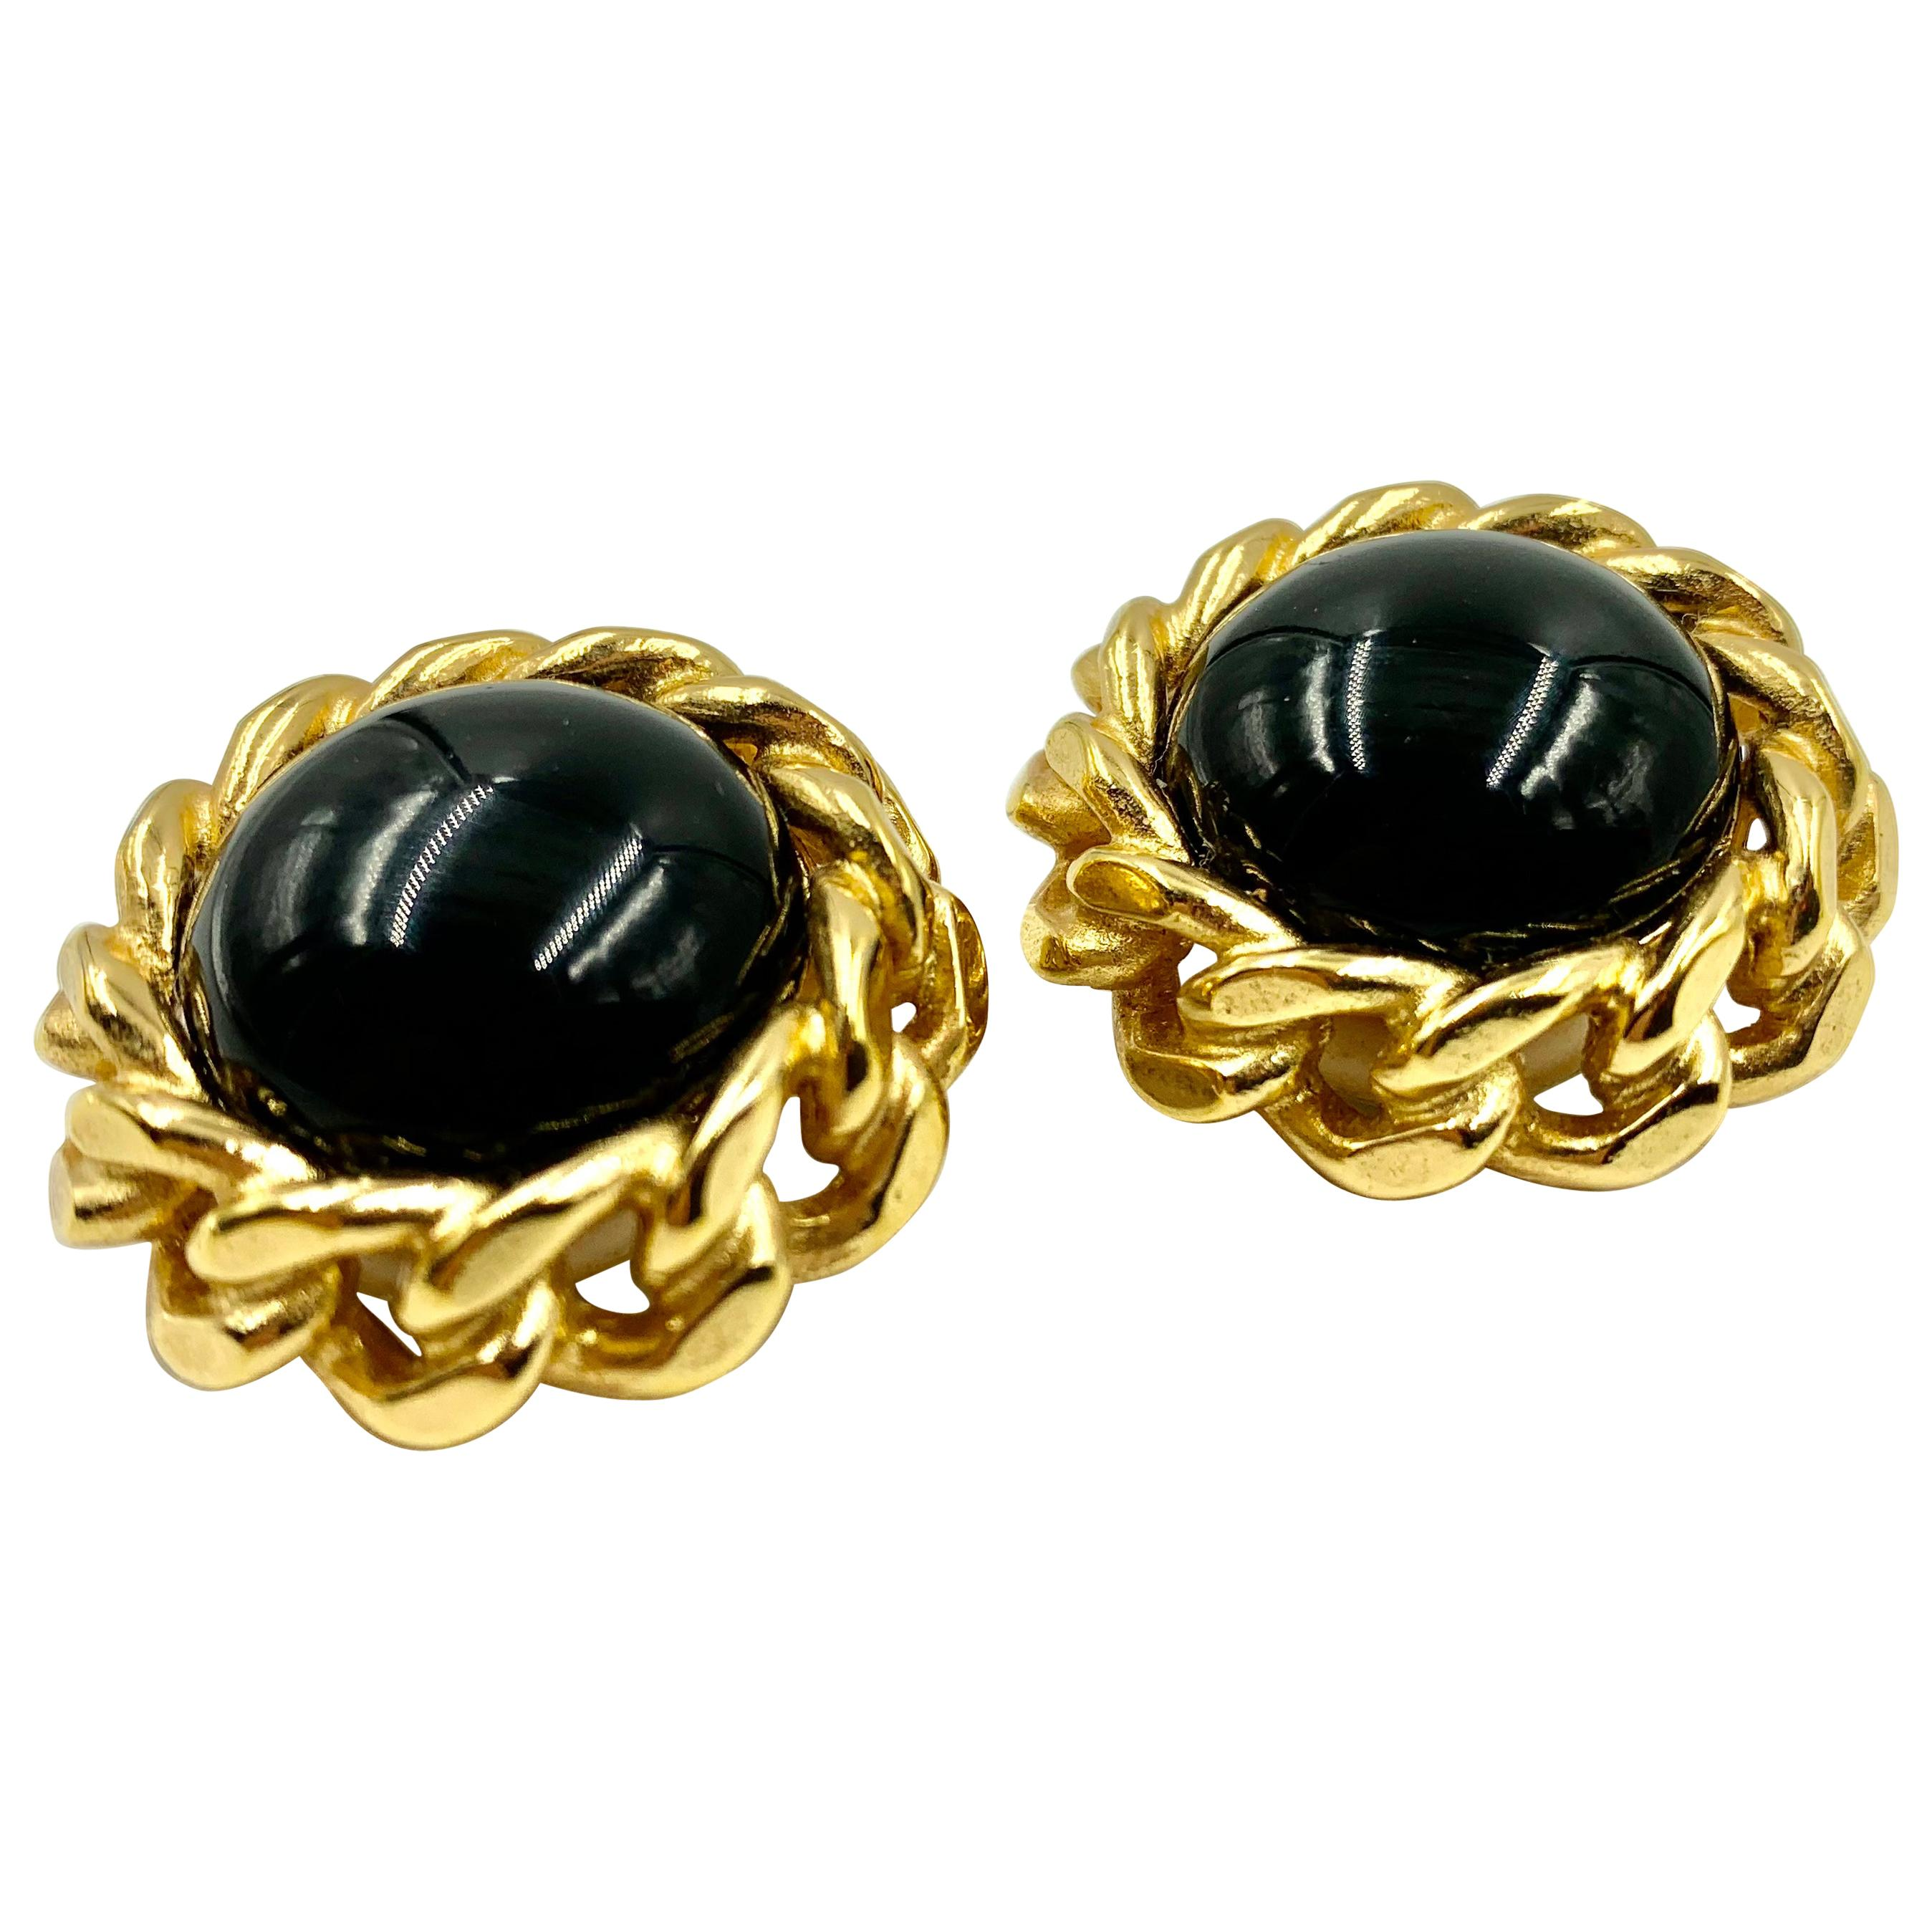 Classic Christian Dior Chain Link Faux Black Onyx Earrings, Vintage, 1980s